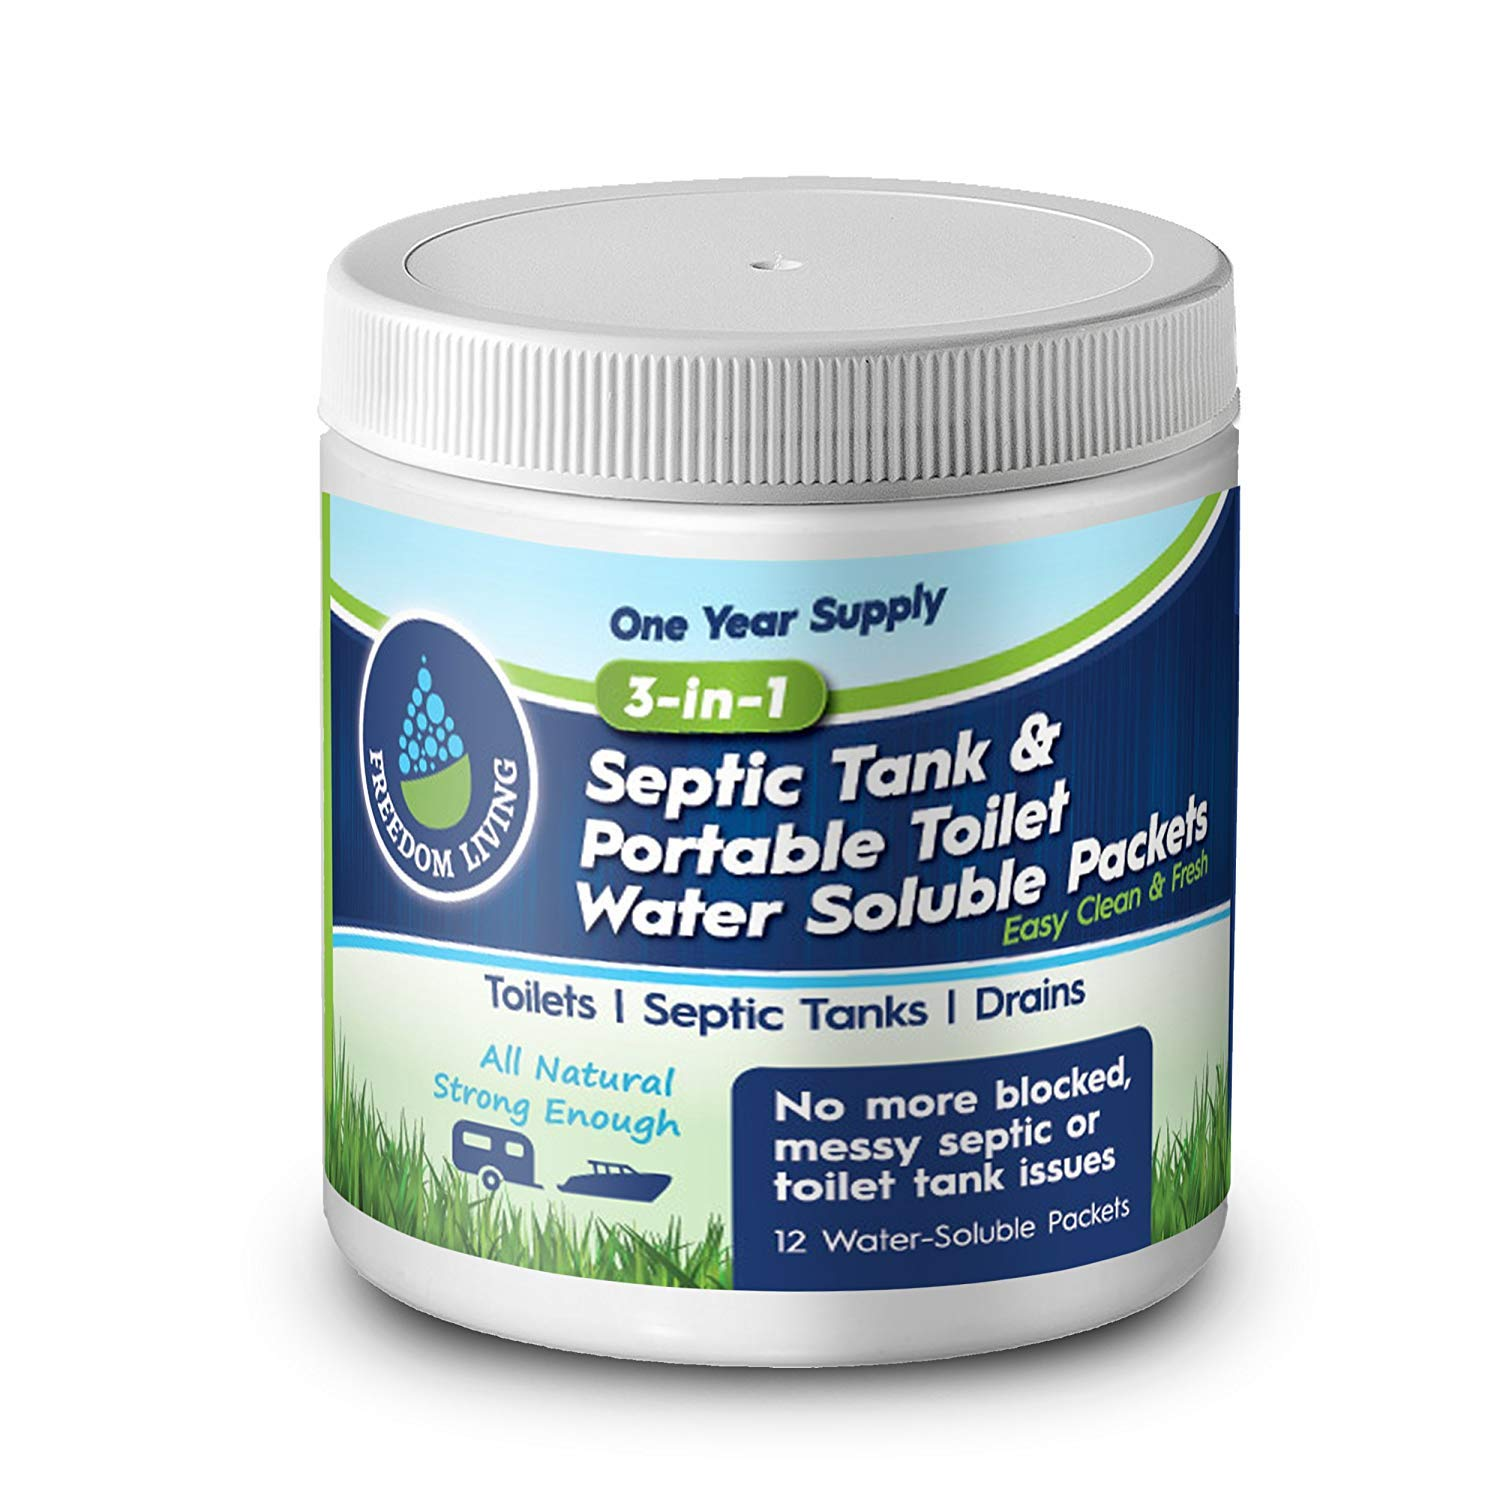 Septic Tank Treatment & Holding Tank Deodorizer Tablets, 1 year supply, Bio clean Packs for RV, Marine Portable Toilets, toilet cleaning chemicals, All Natural. Must have RV accessories by Freedom Living (Image #3)